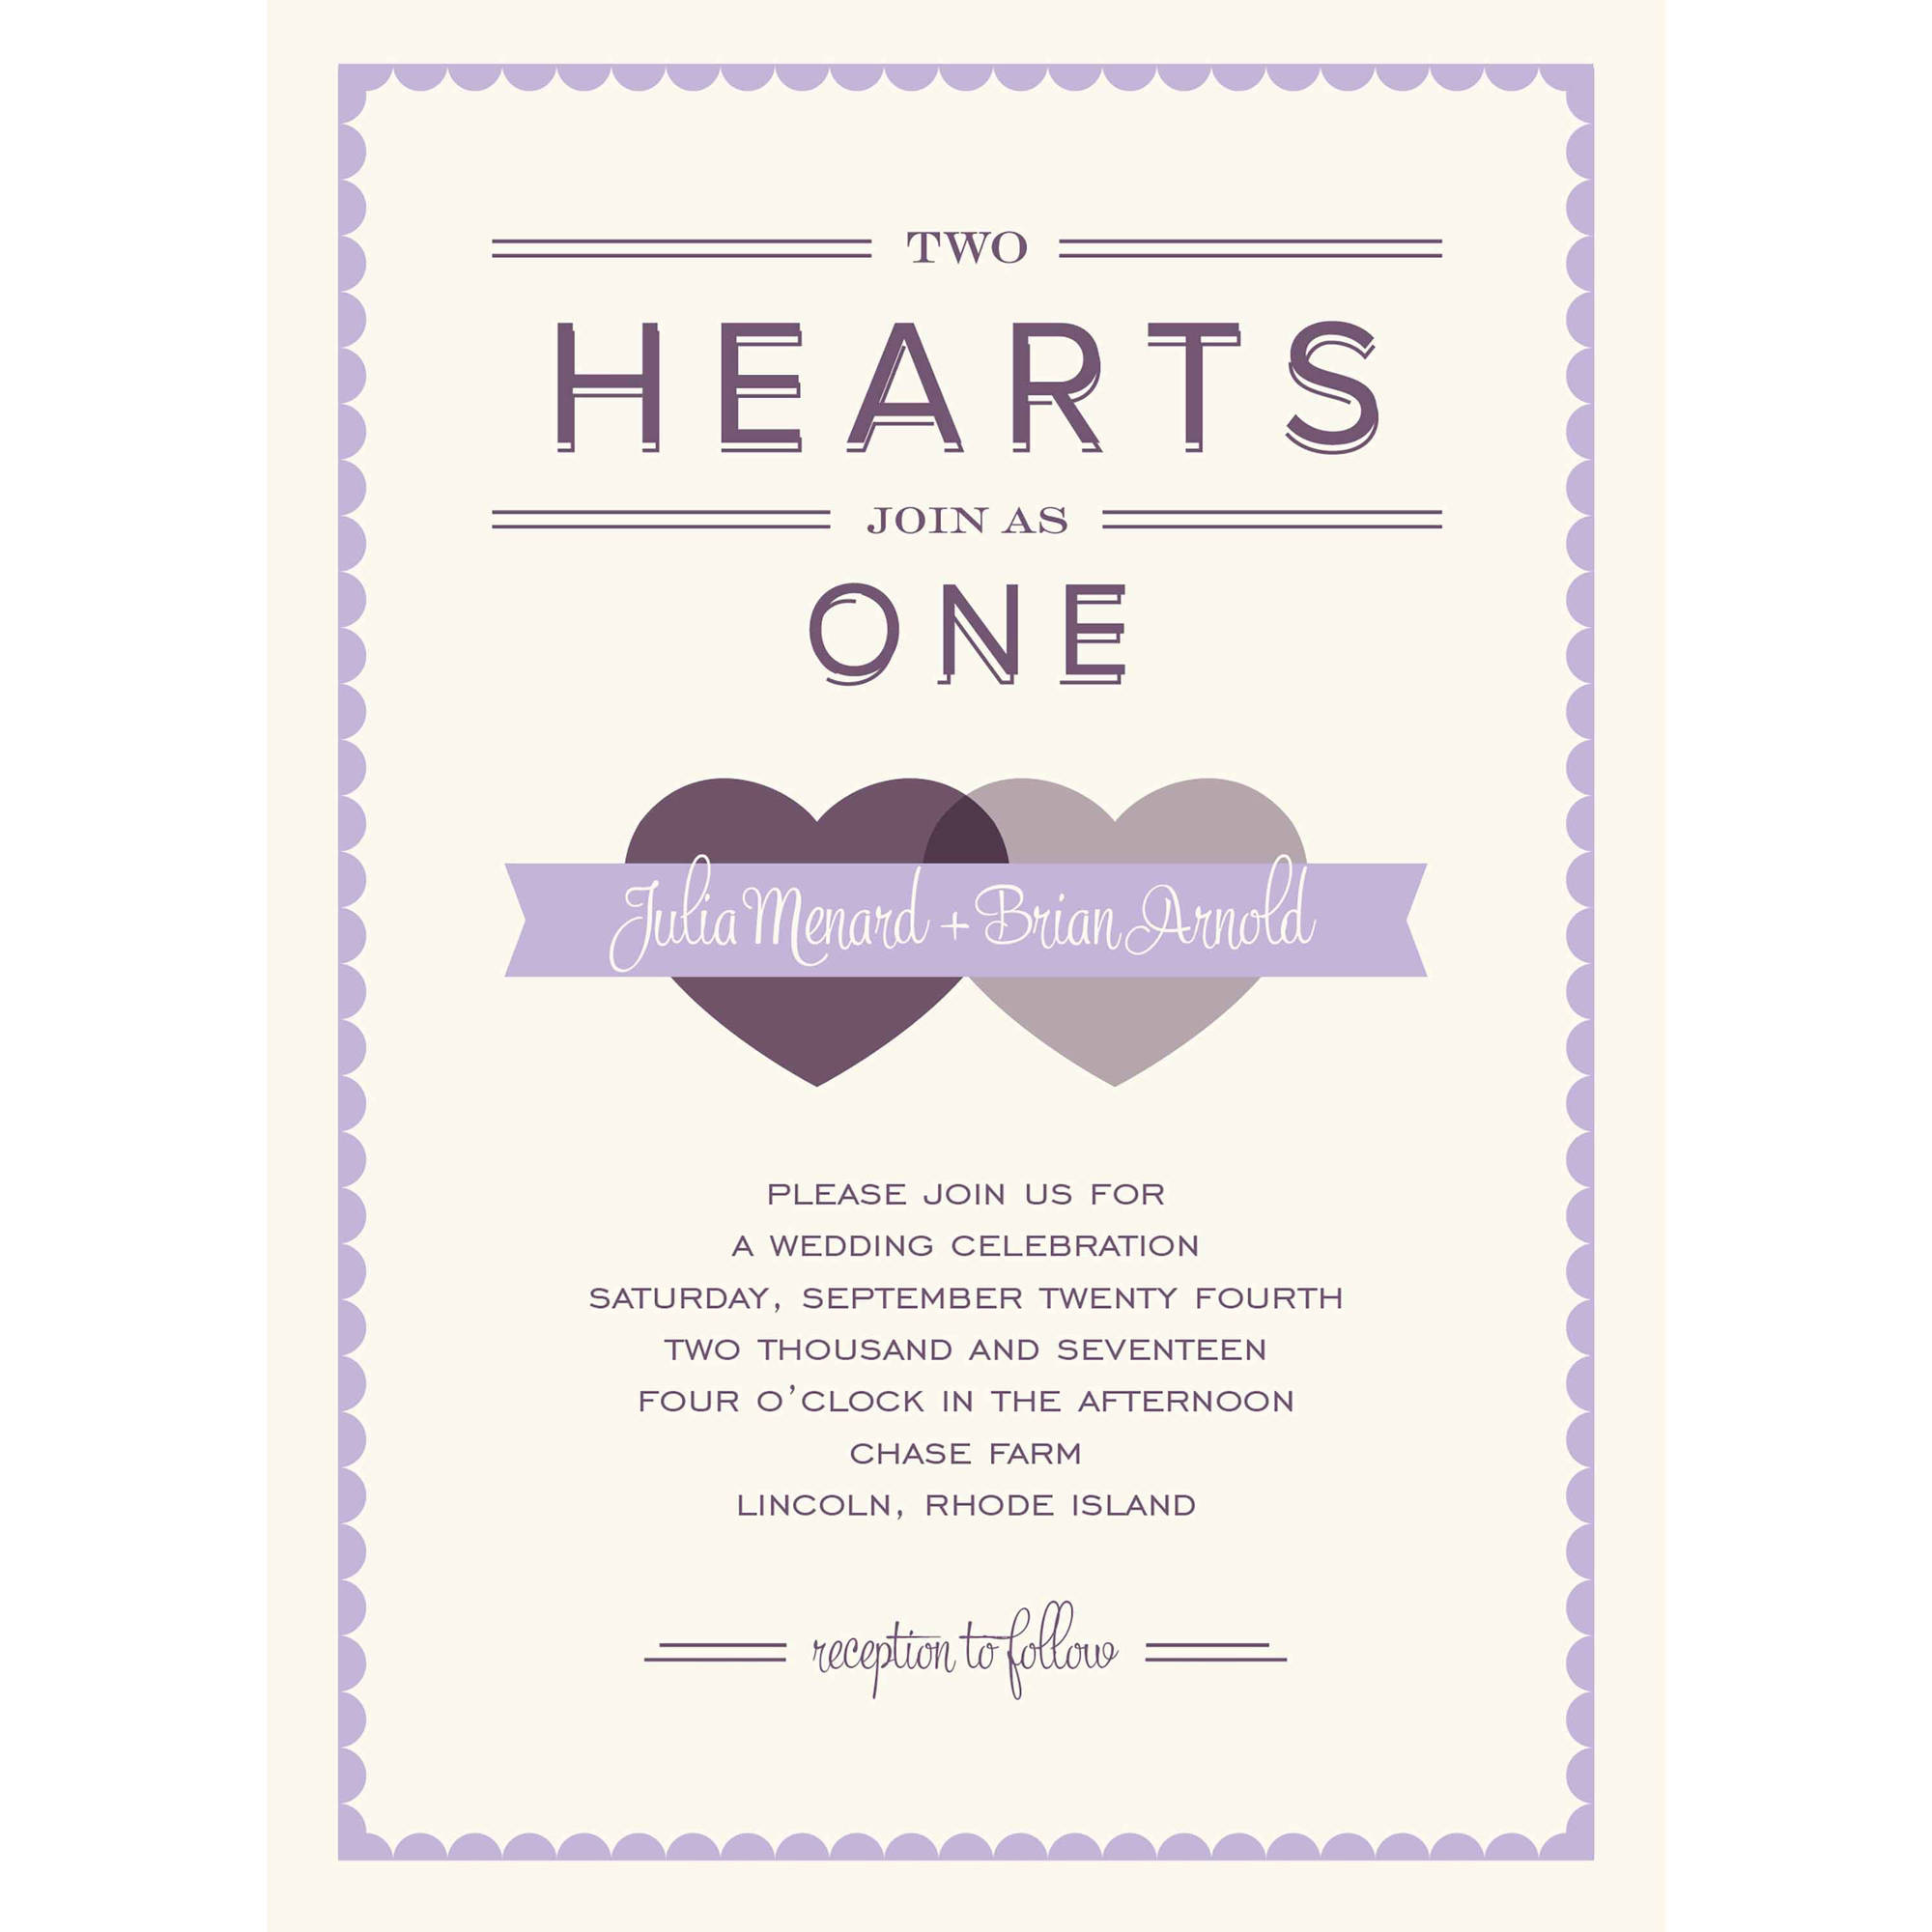 Two Hearts Standard Wedding Invitation